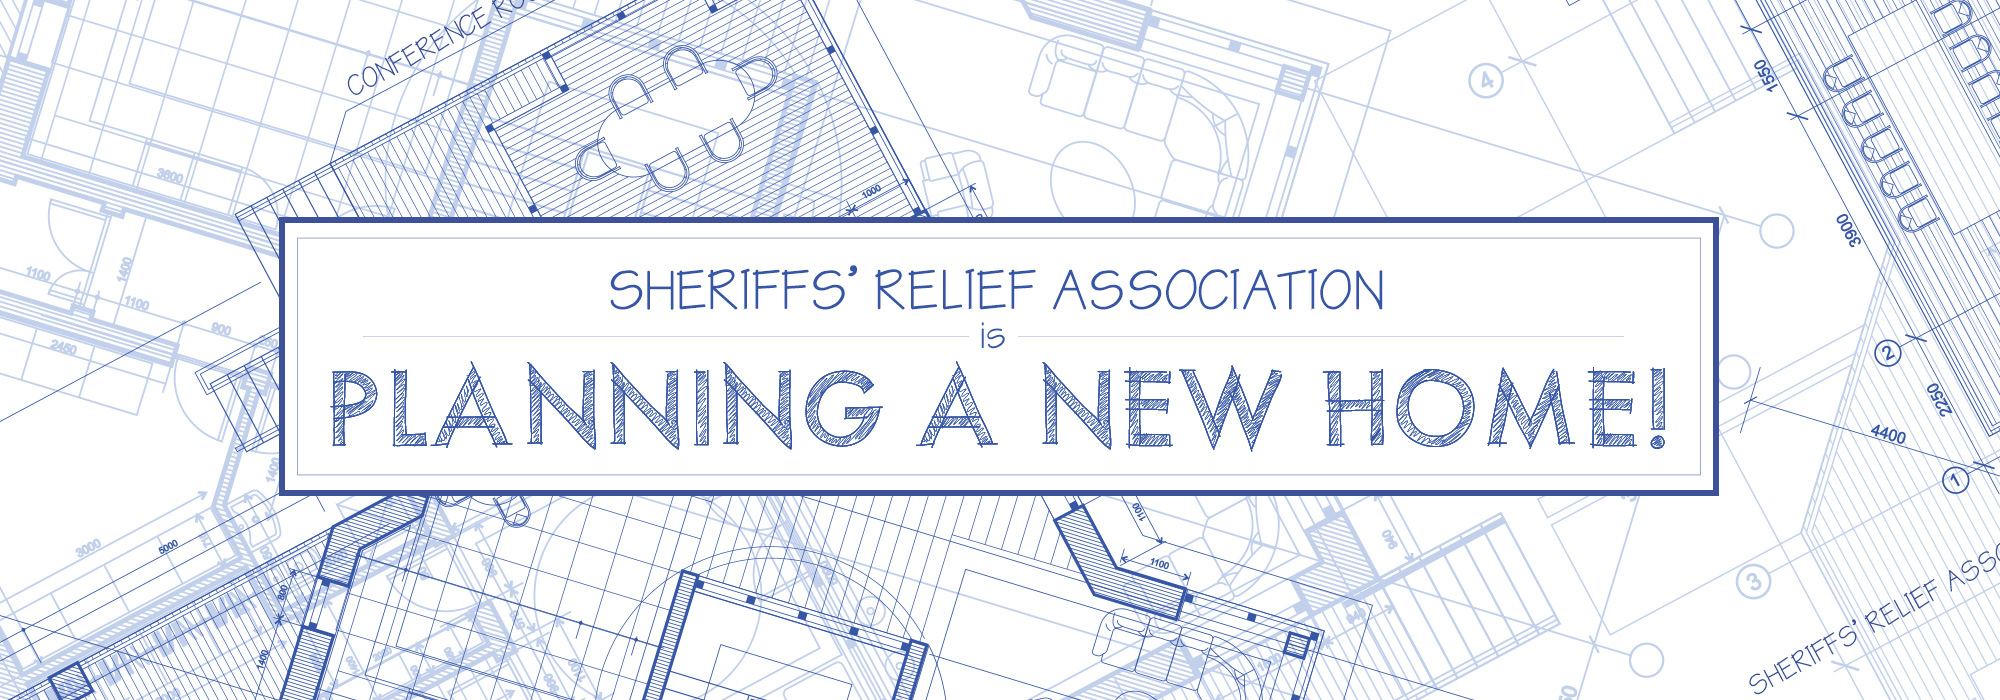 Sheriffs' Relief Association is Planning a New Home!